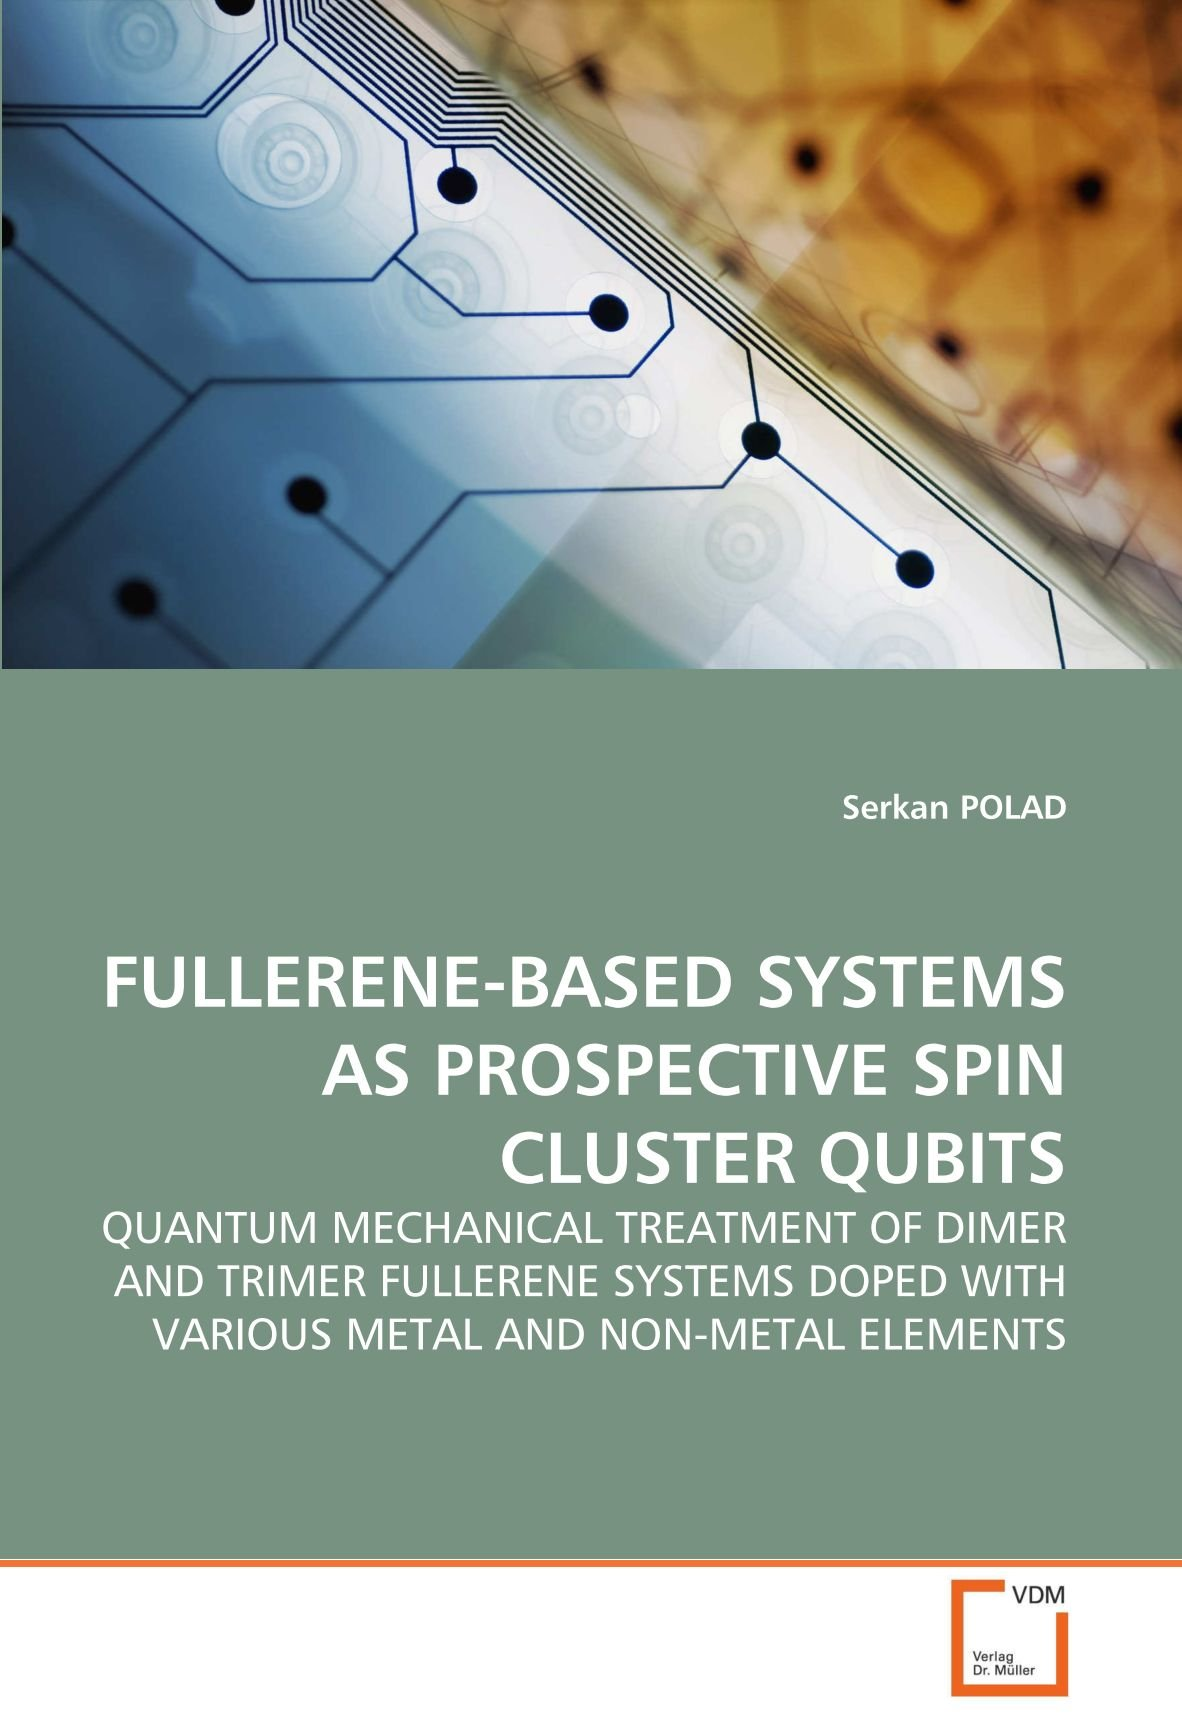 FULLERENE-BASED SYSTEMS AS PROSPECTIVE SPIN CLUSTER QUBITS: QUANTUM MECHANICAL TREATMENT OF DIMER AND TRIMER FULLERENE SYSTEMS DOPED WITH VARIOUS METAL AND NON-METAL ELEMENTS pdf